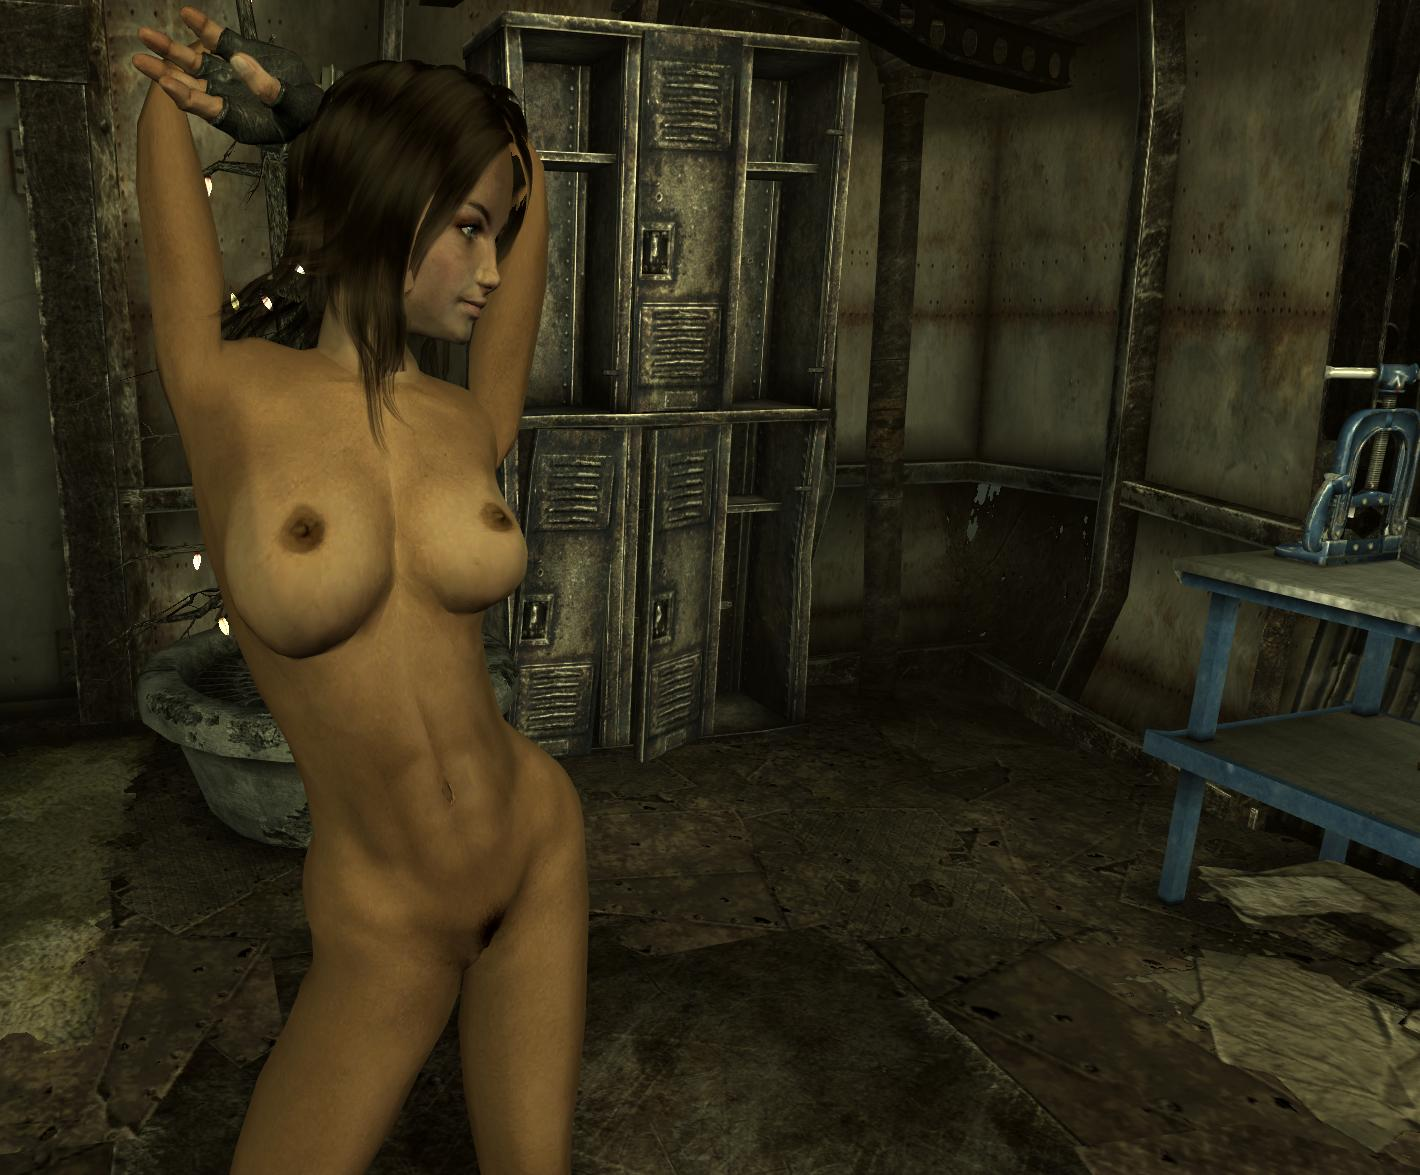 Fallout 3 XXX naked cartoon image